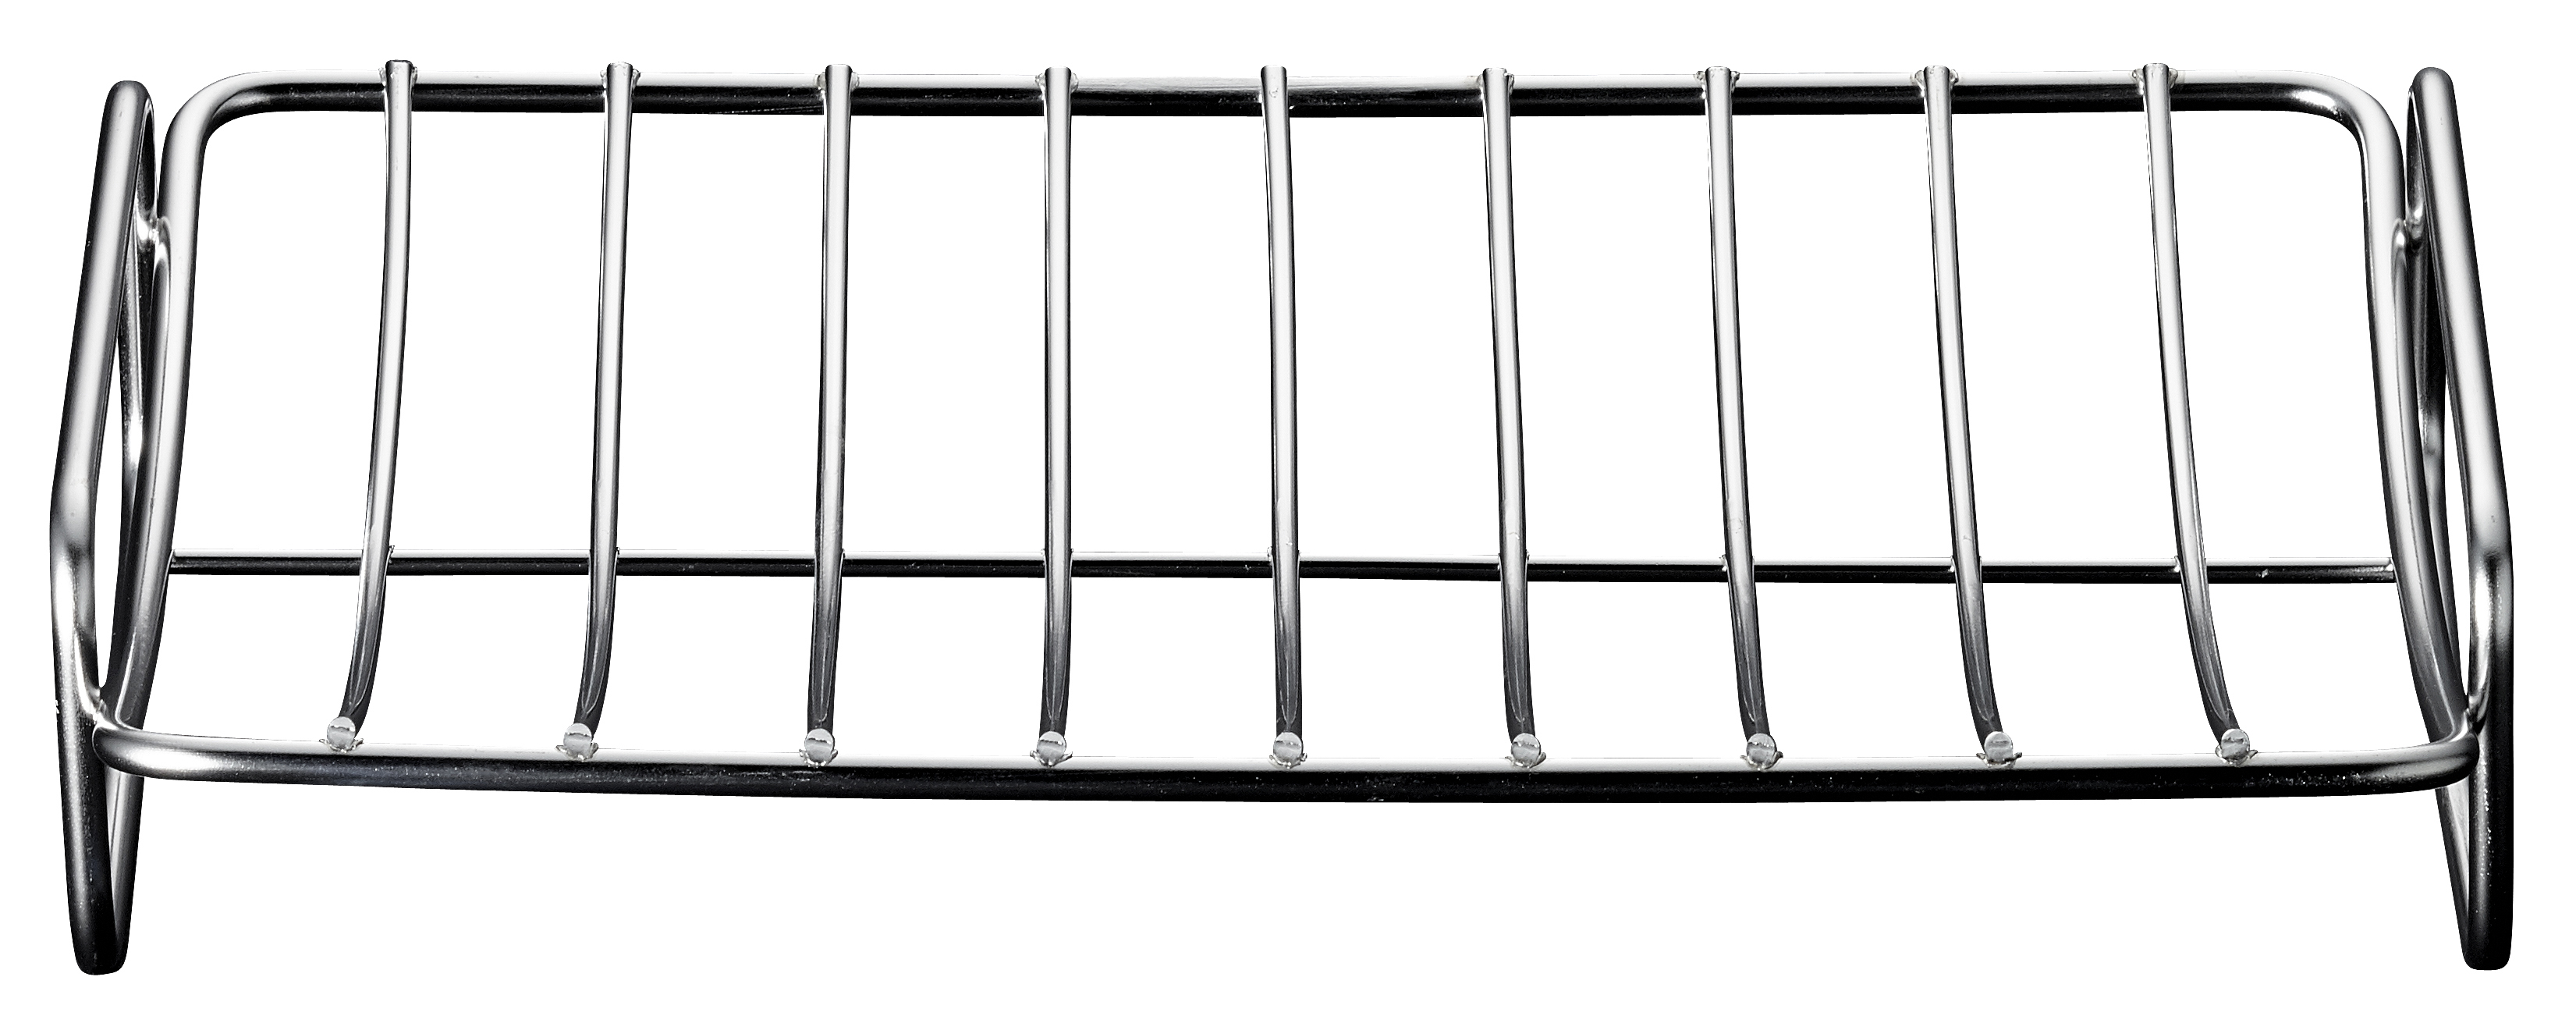 26x19cm Rack for Roaster 30321200 - Accessories, 26 x 19cm